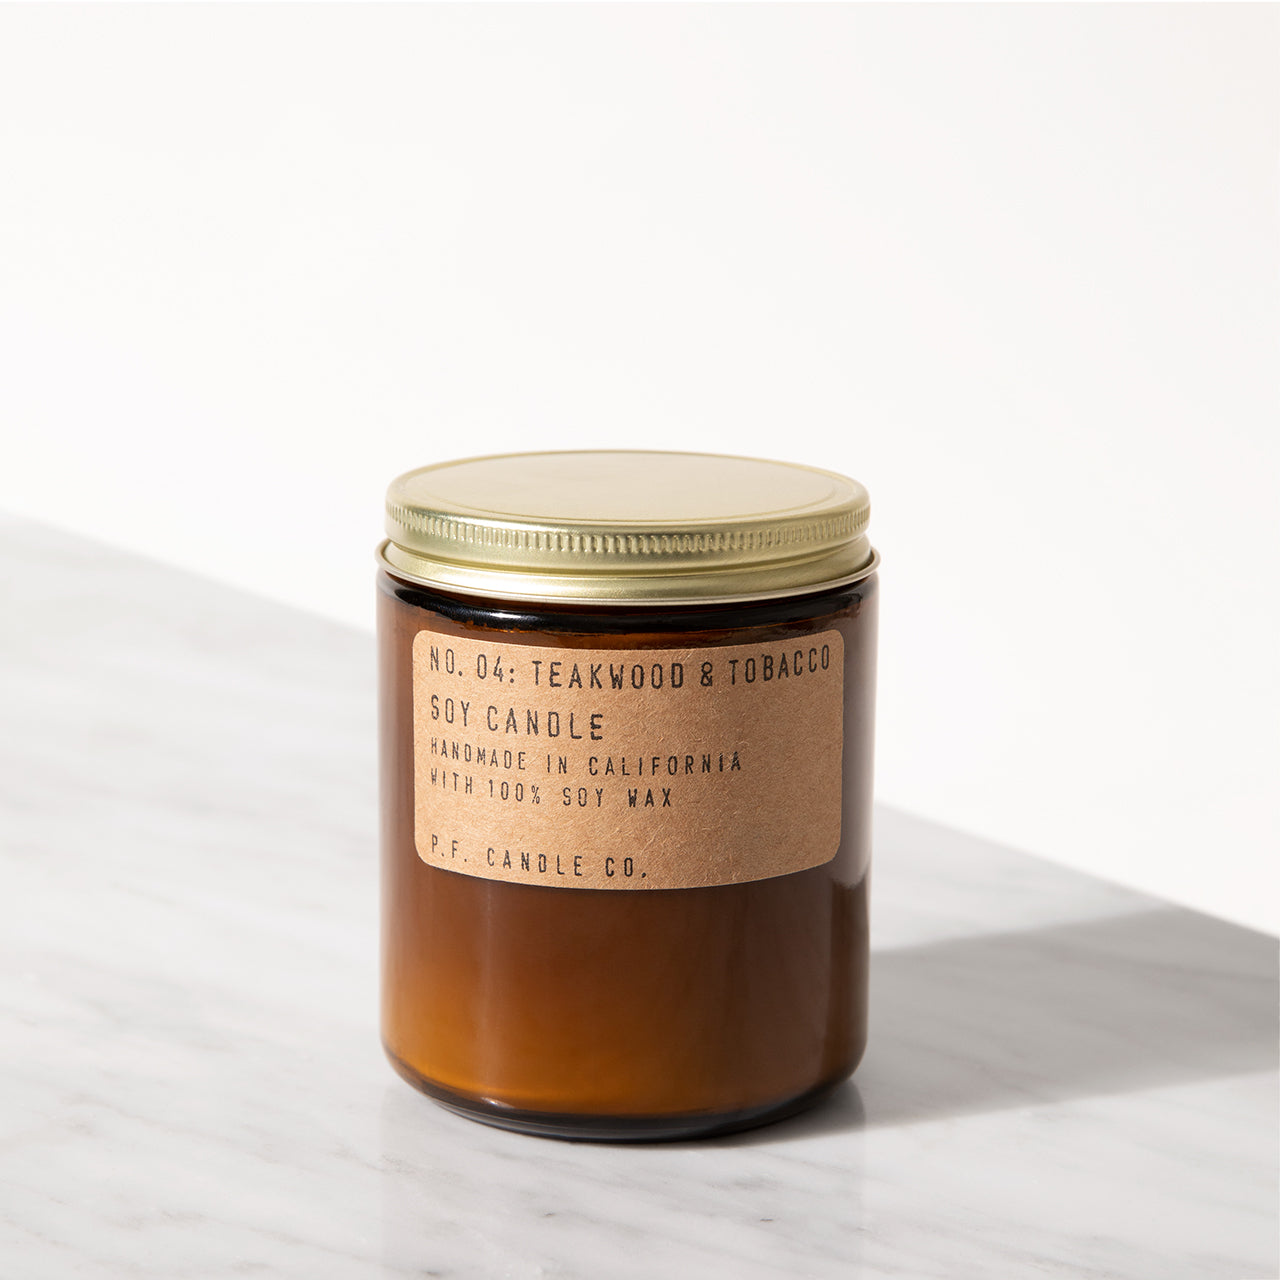 Teakwood & Tobacco, Ø7,3 fra P.F. Candle Co.